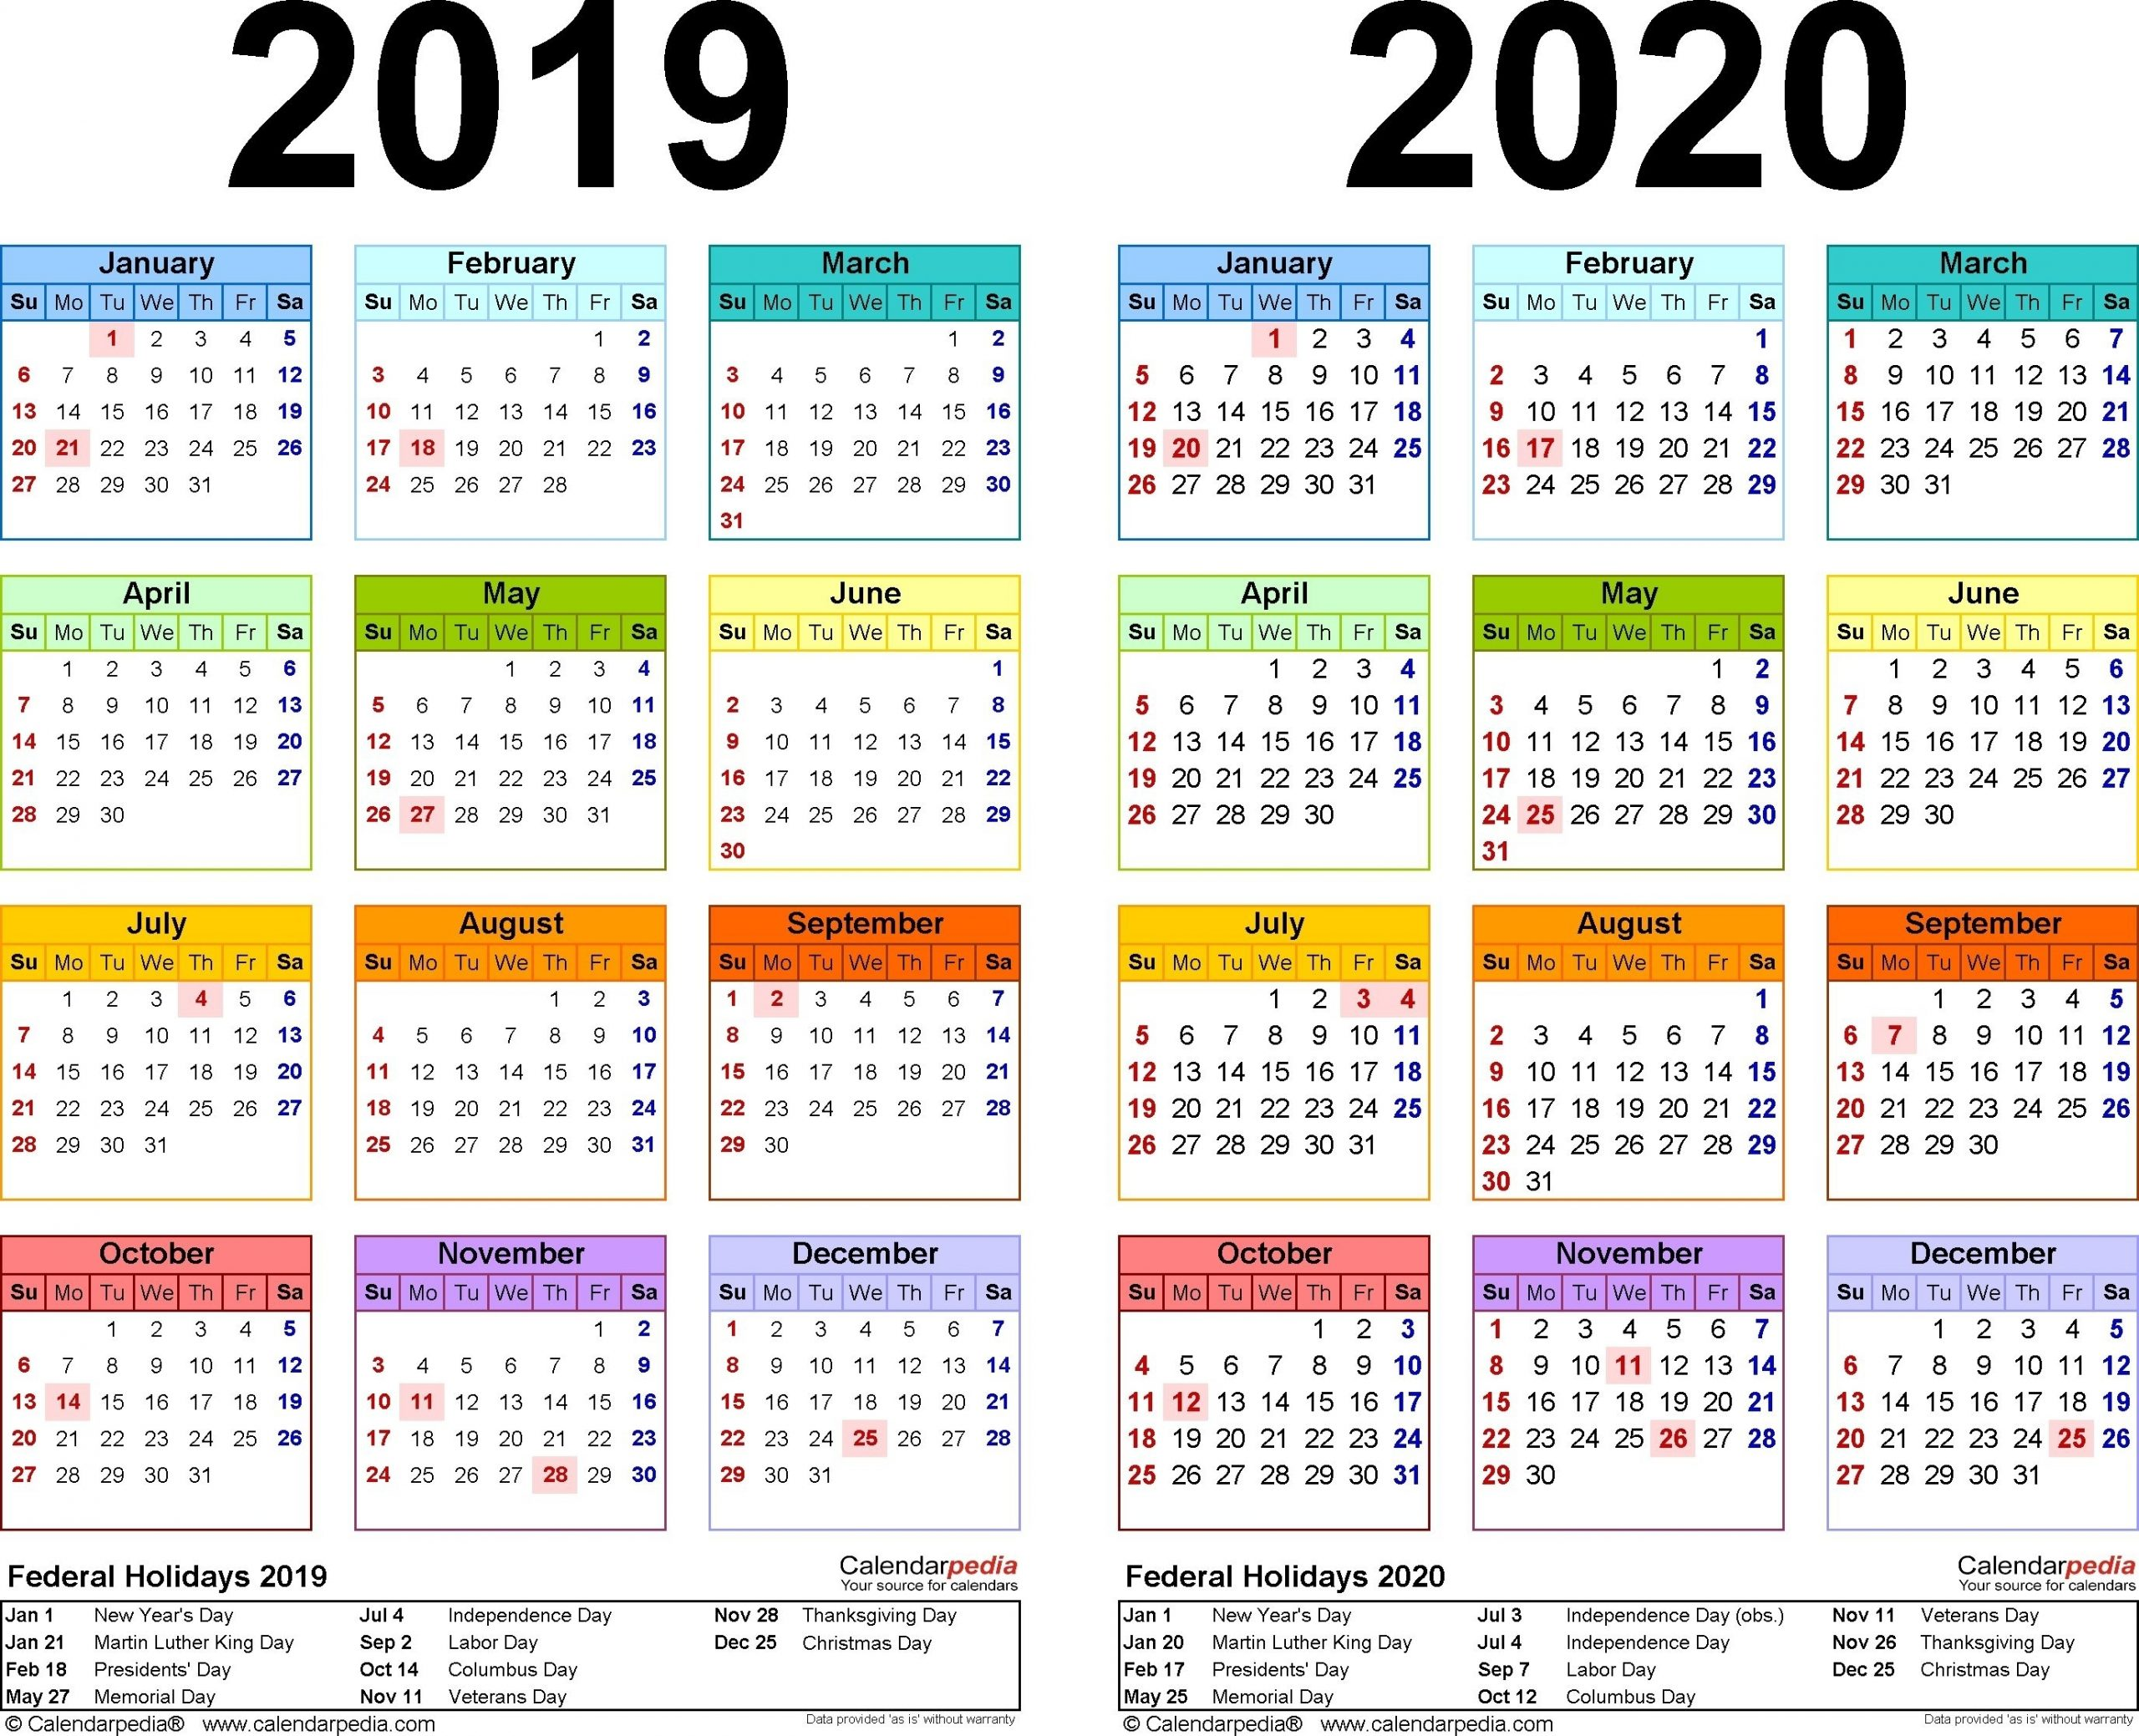 2019-2020 Calendar - Free Printable Two-Year Excel